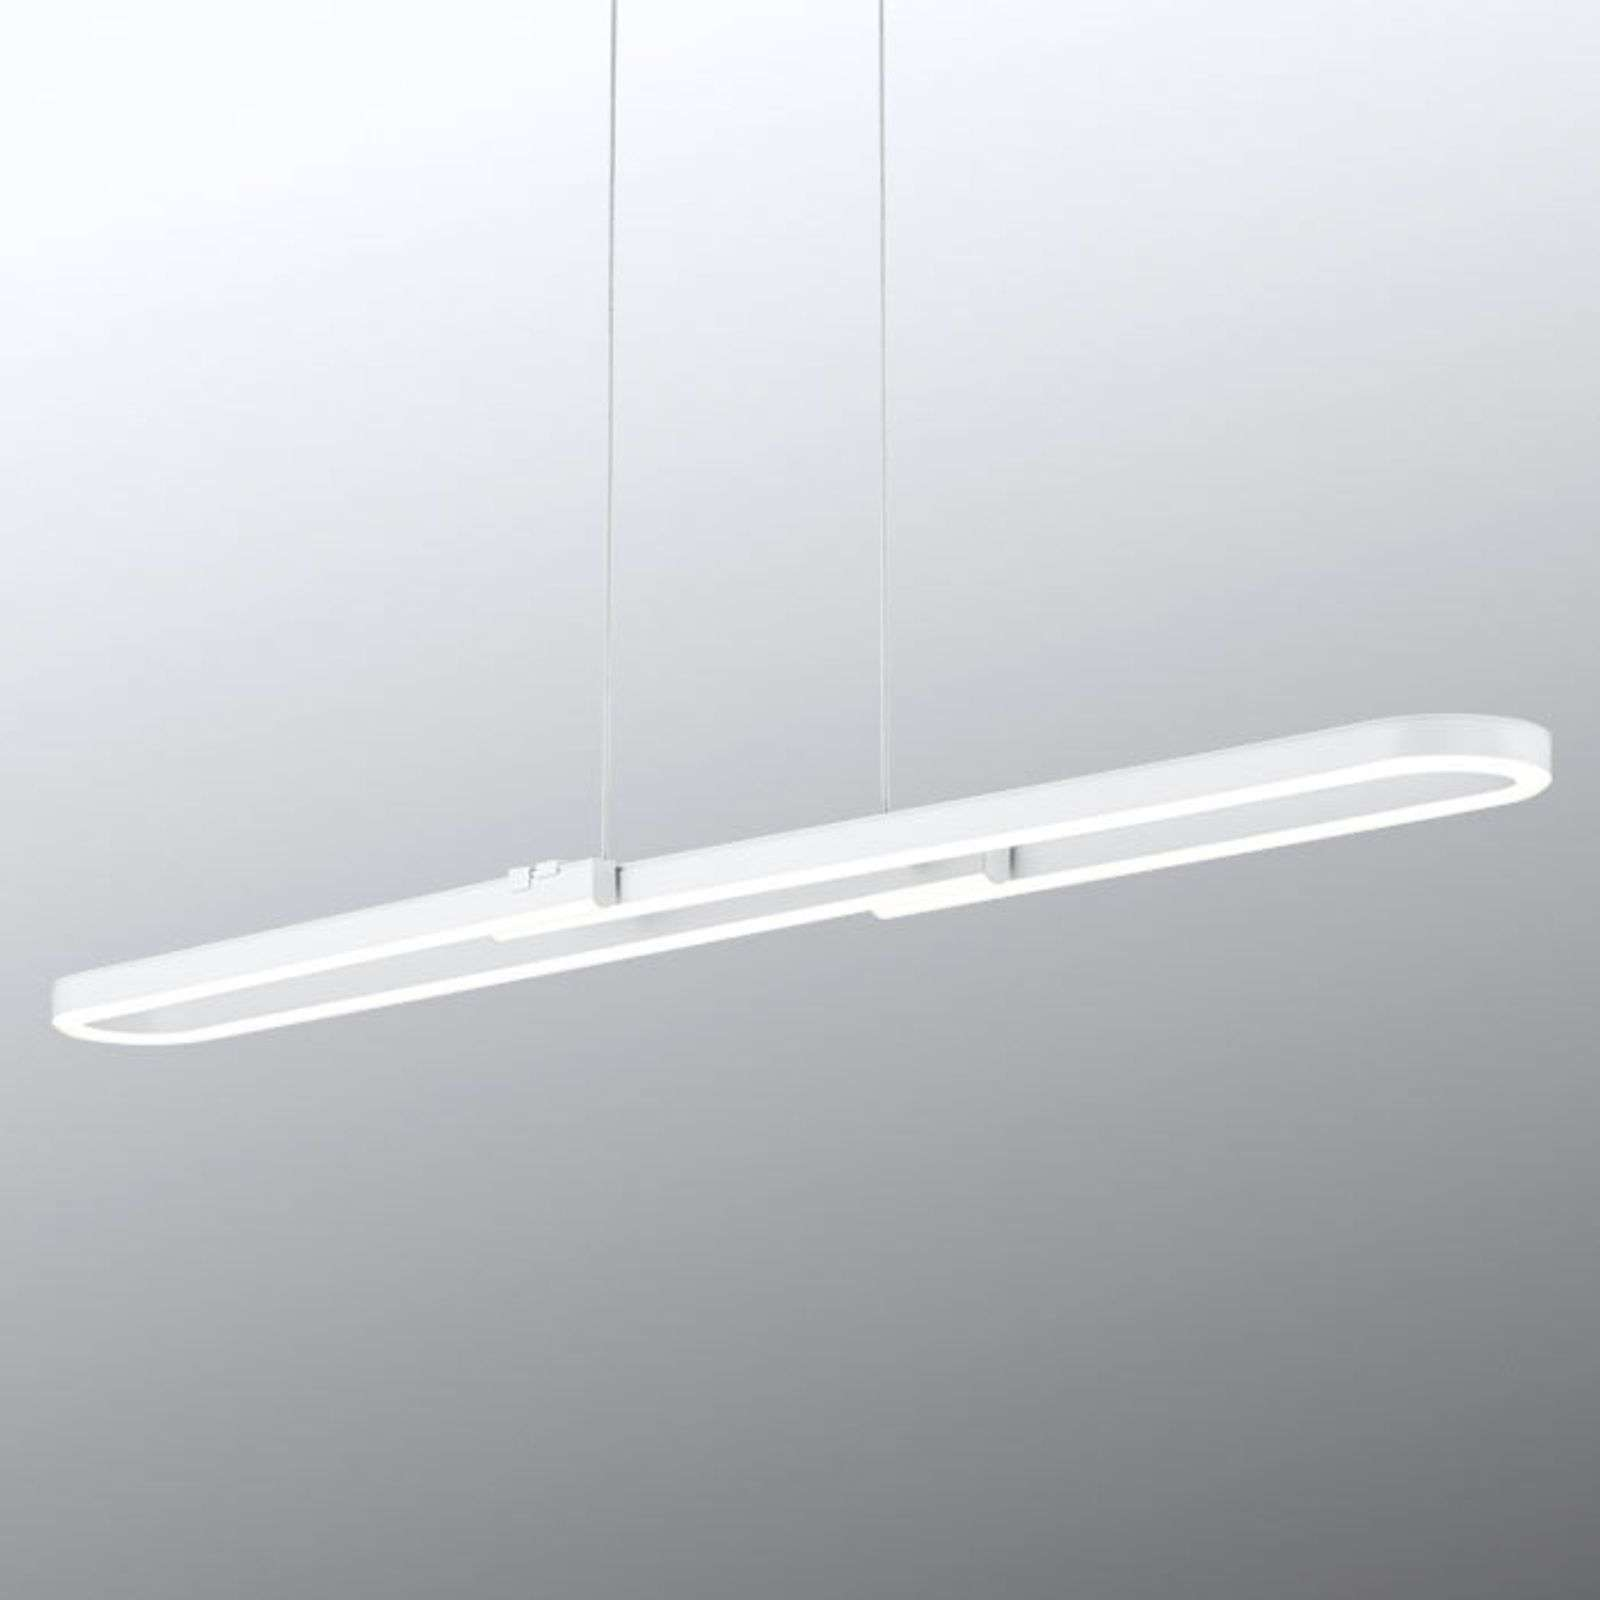 Romulus suspension LED extensible, 70-100 cm